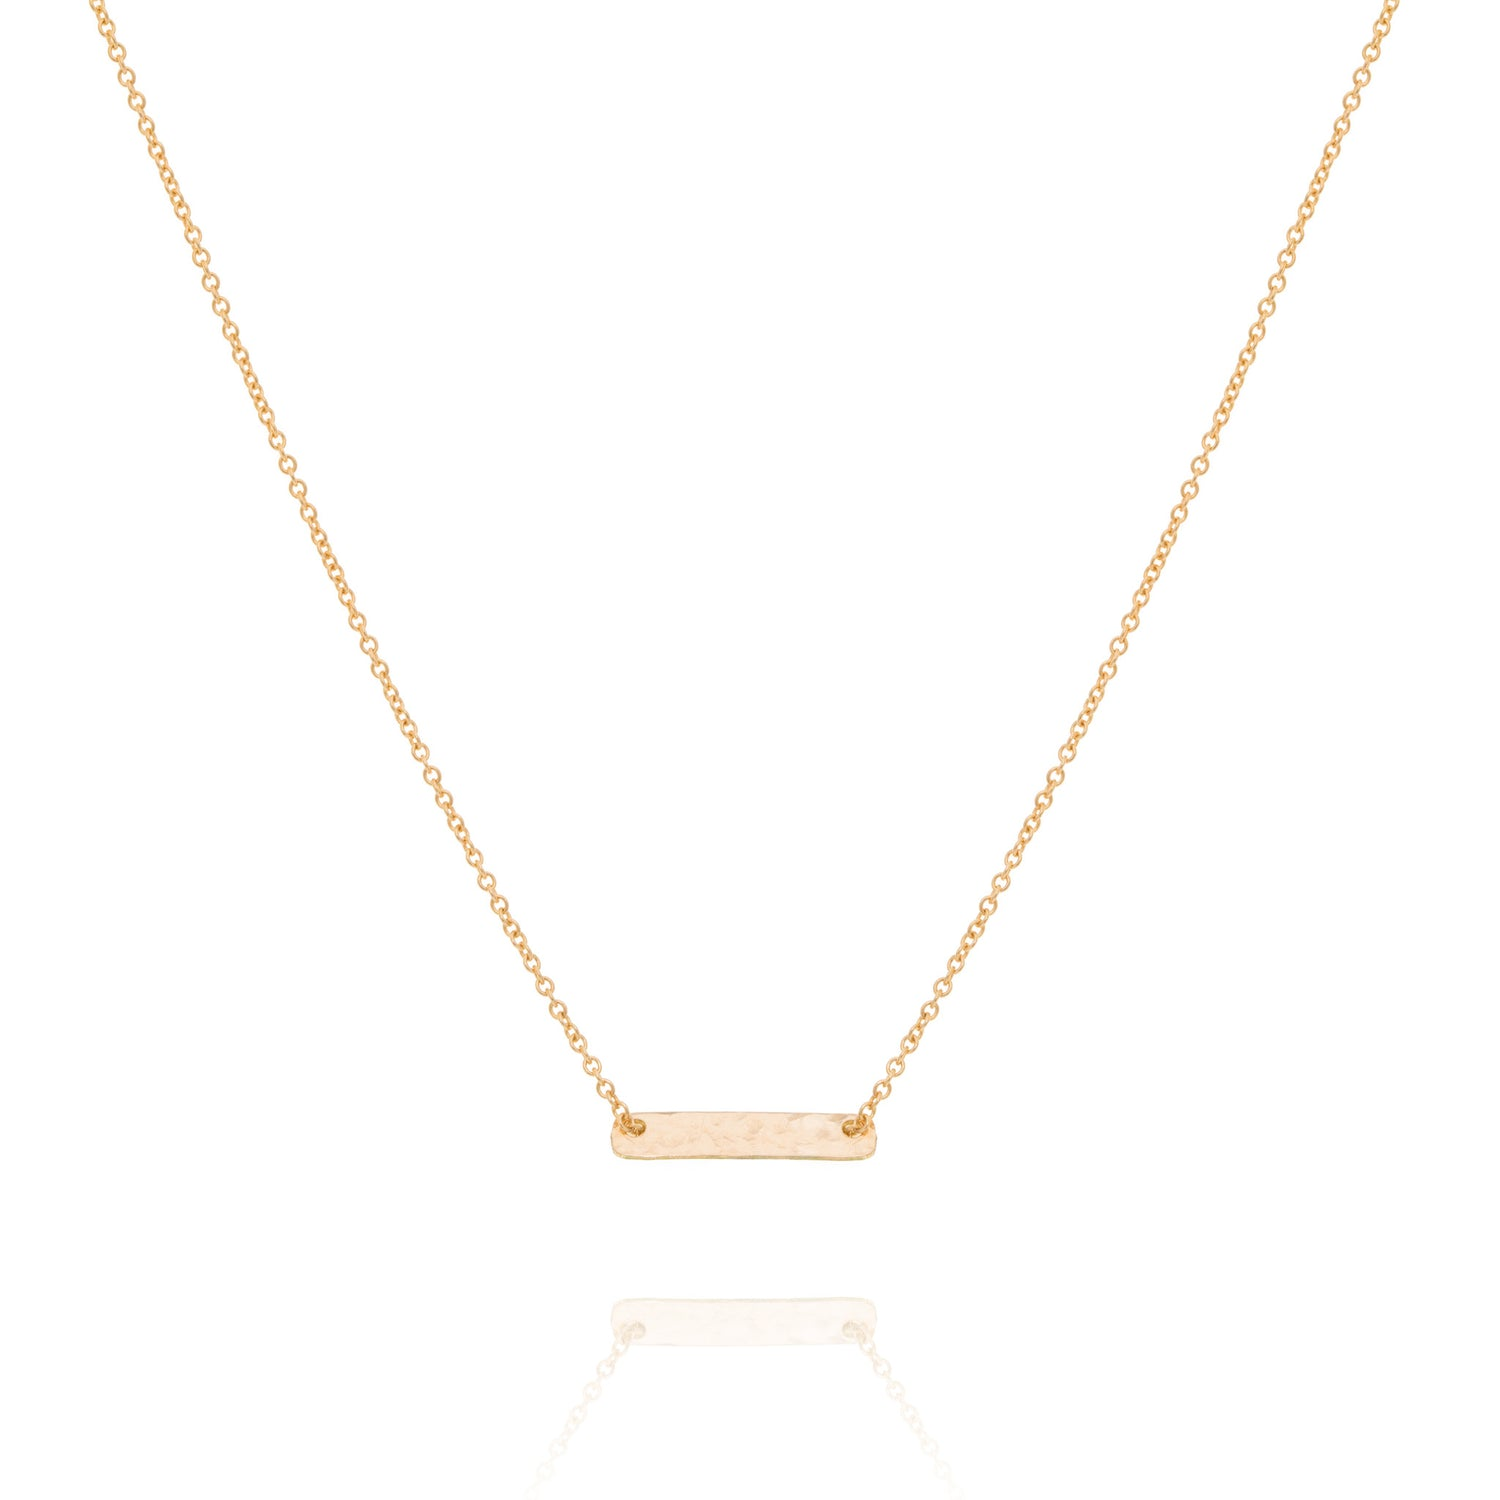 Mini Bar necklace, gold